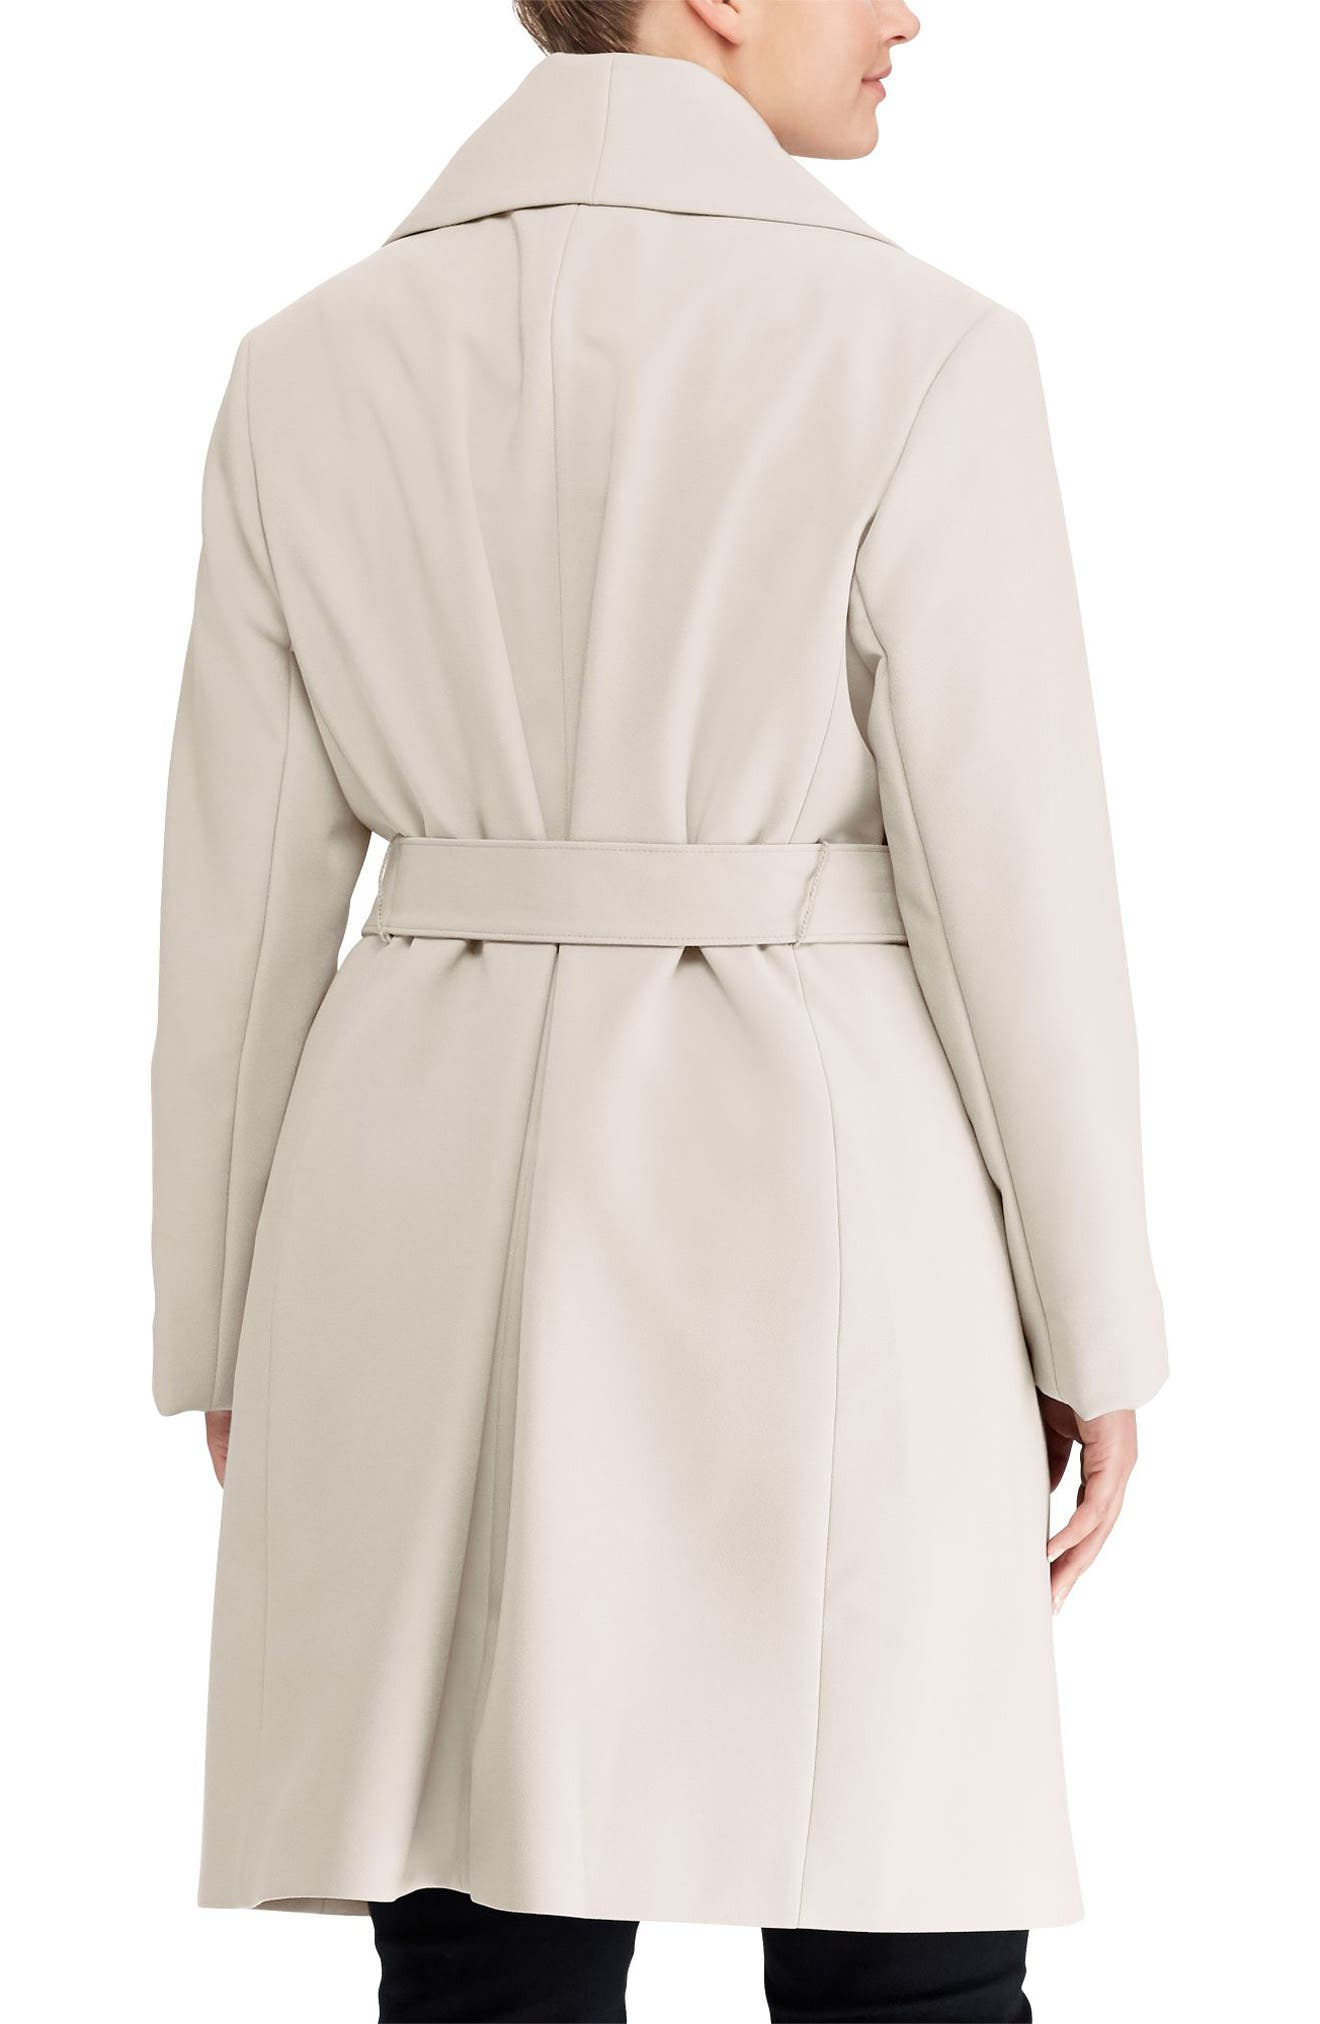 Belted Drape Front Coat,                             Alternate thumbnail 2, color,                             288